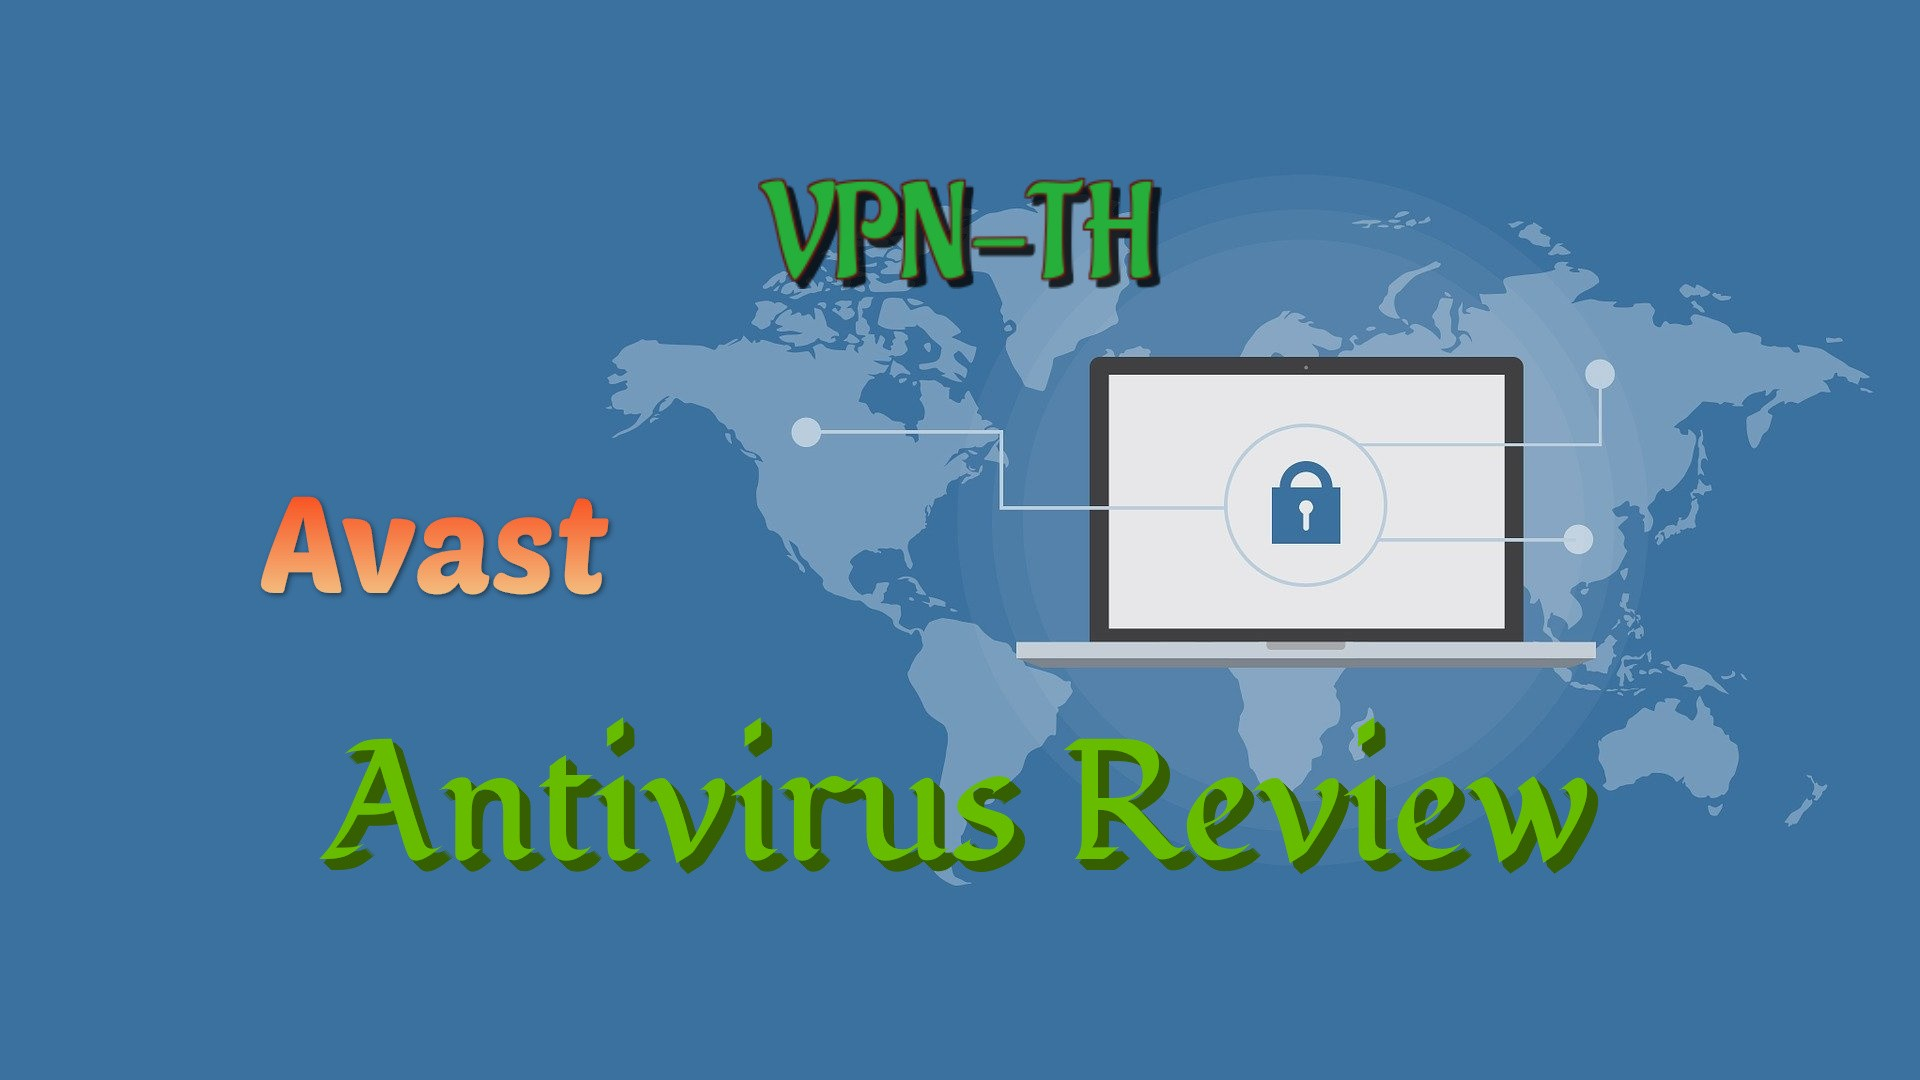 Avast Antivirus Review Features and Tests